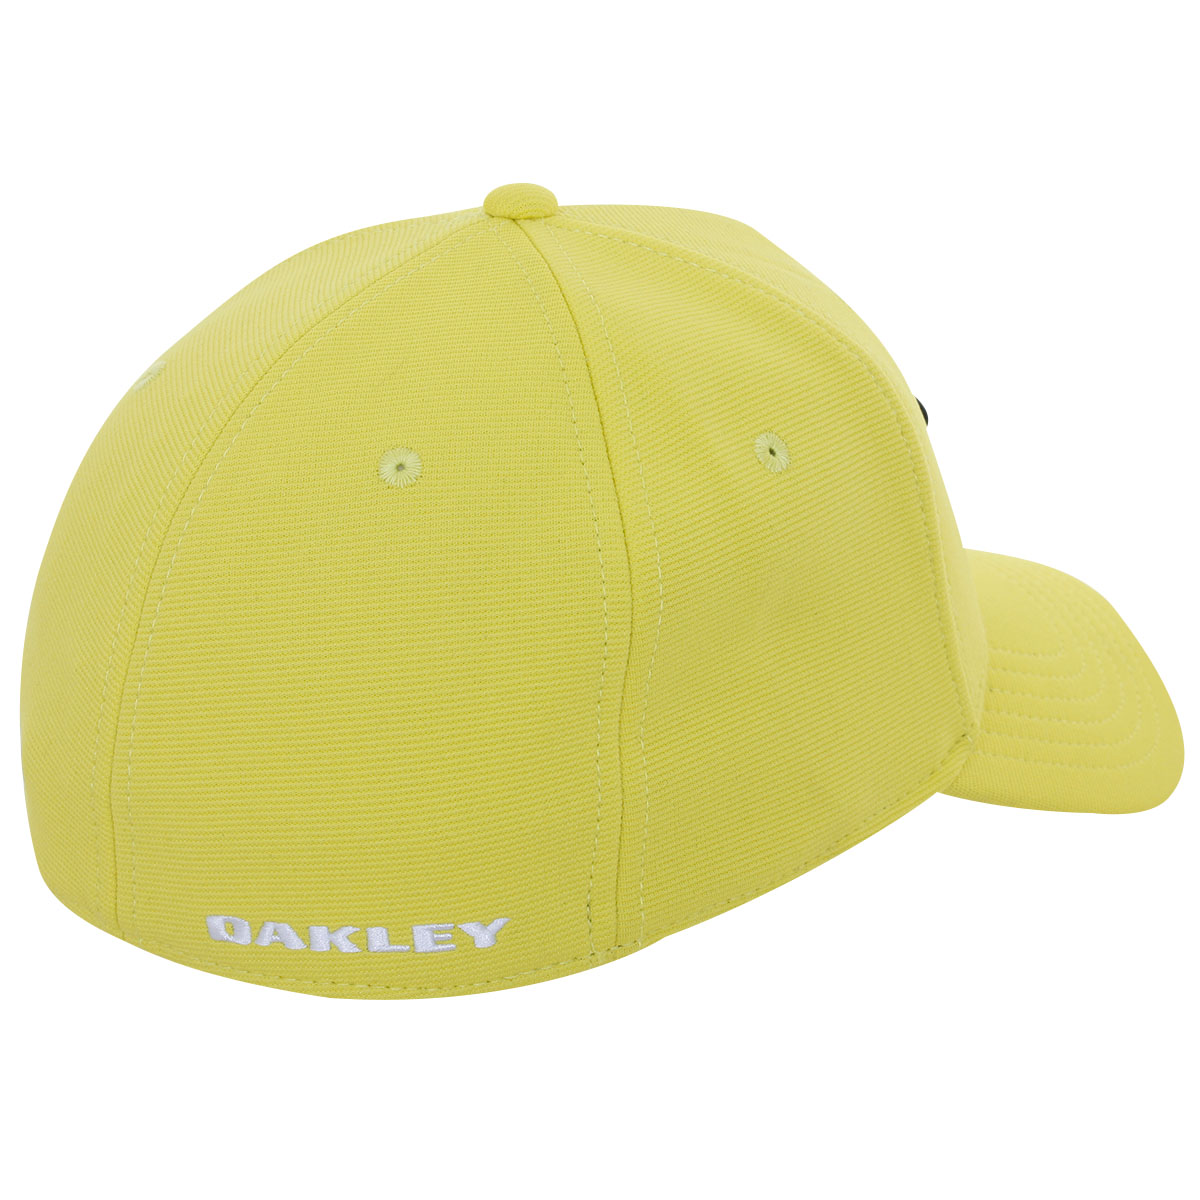 Oakley-Mens-2019-Tincan-Hat-Wicking-Stretch-Breathable-Cap-32-OFF thumbnail 10